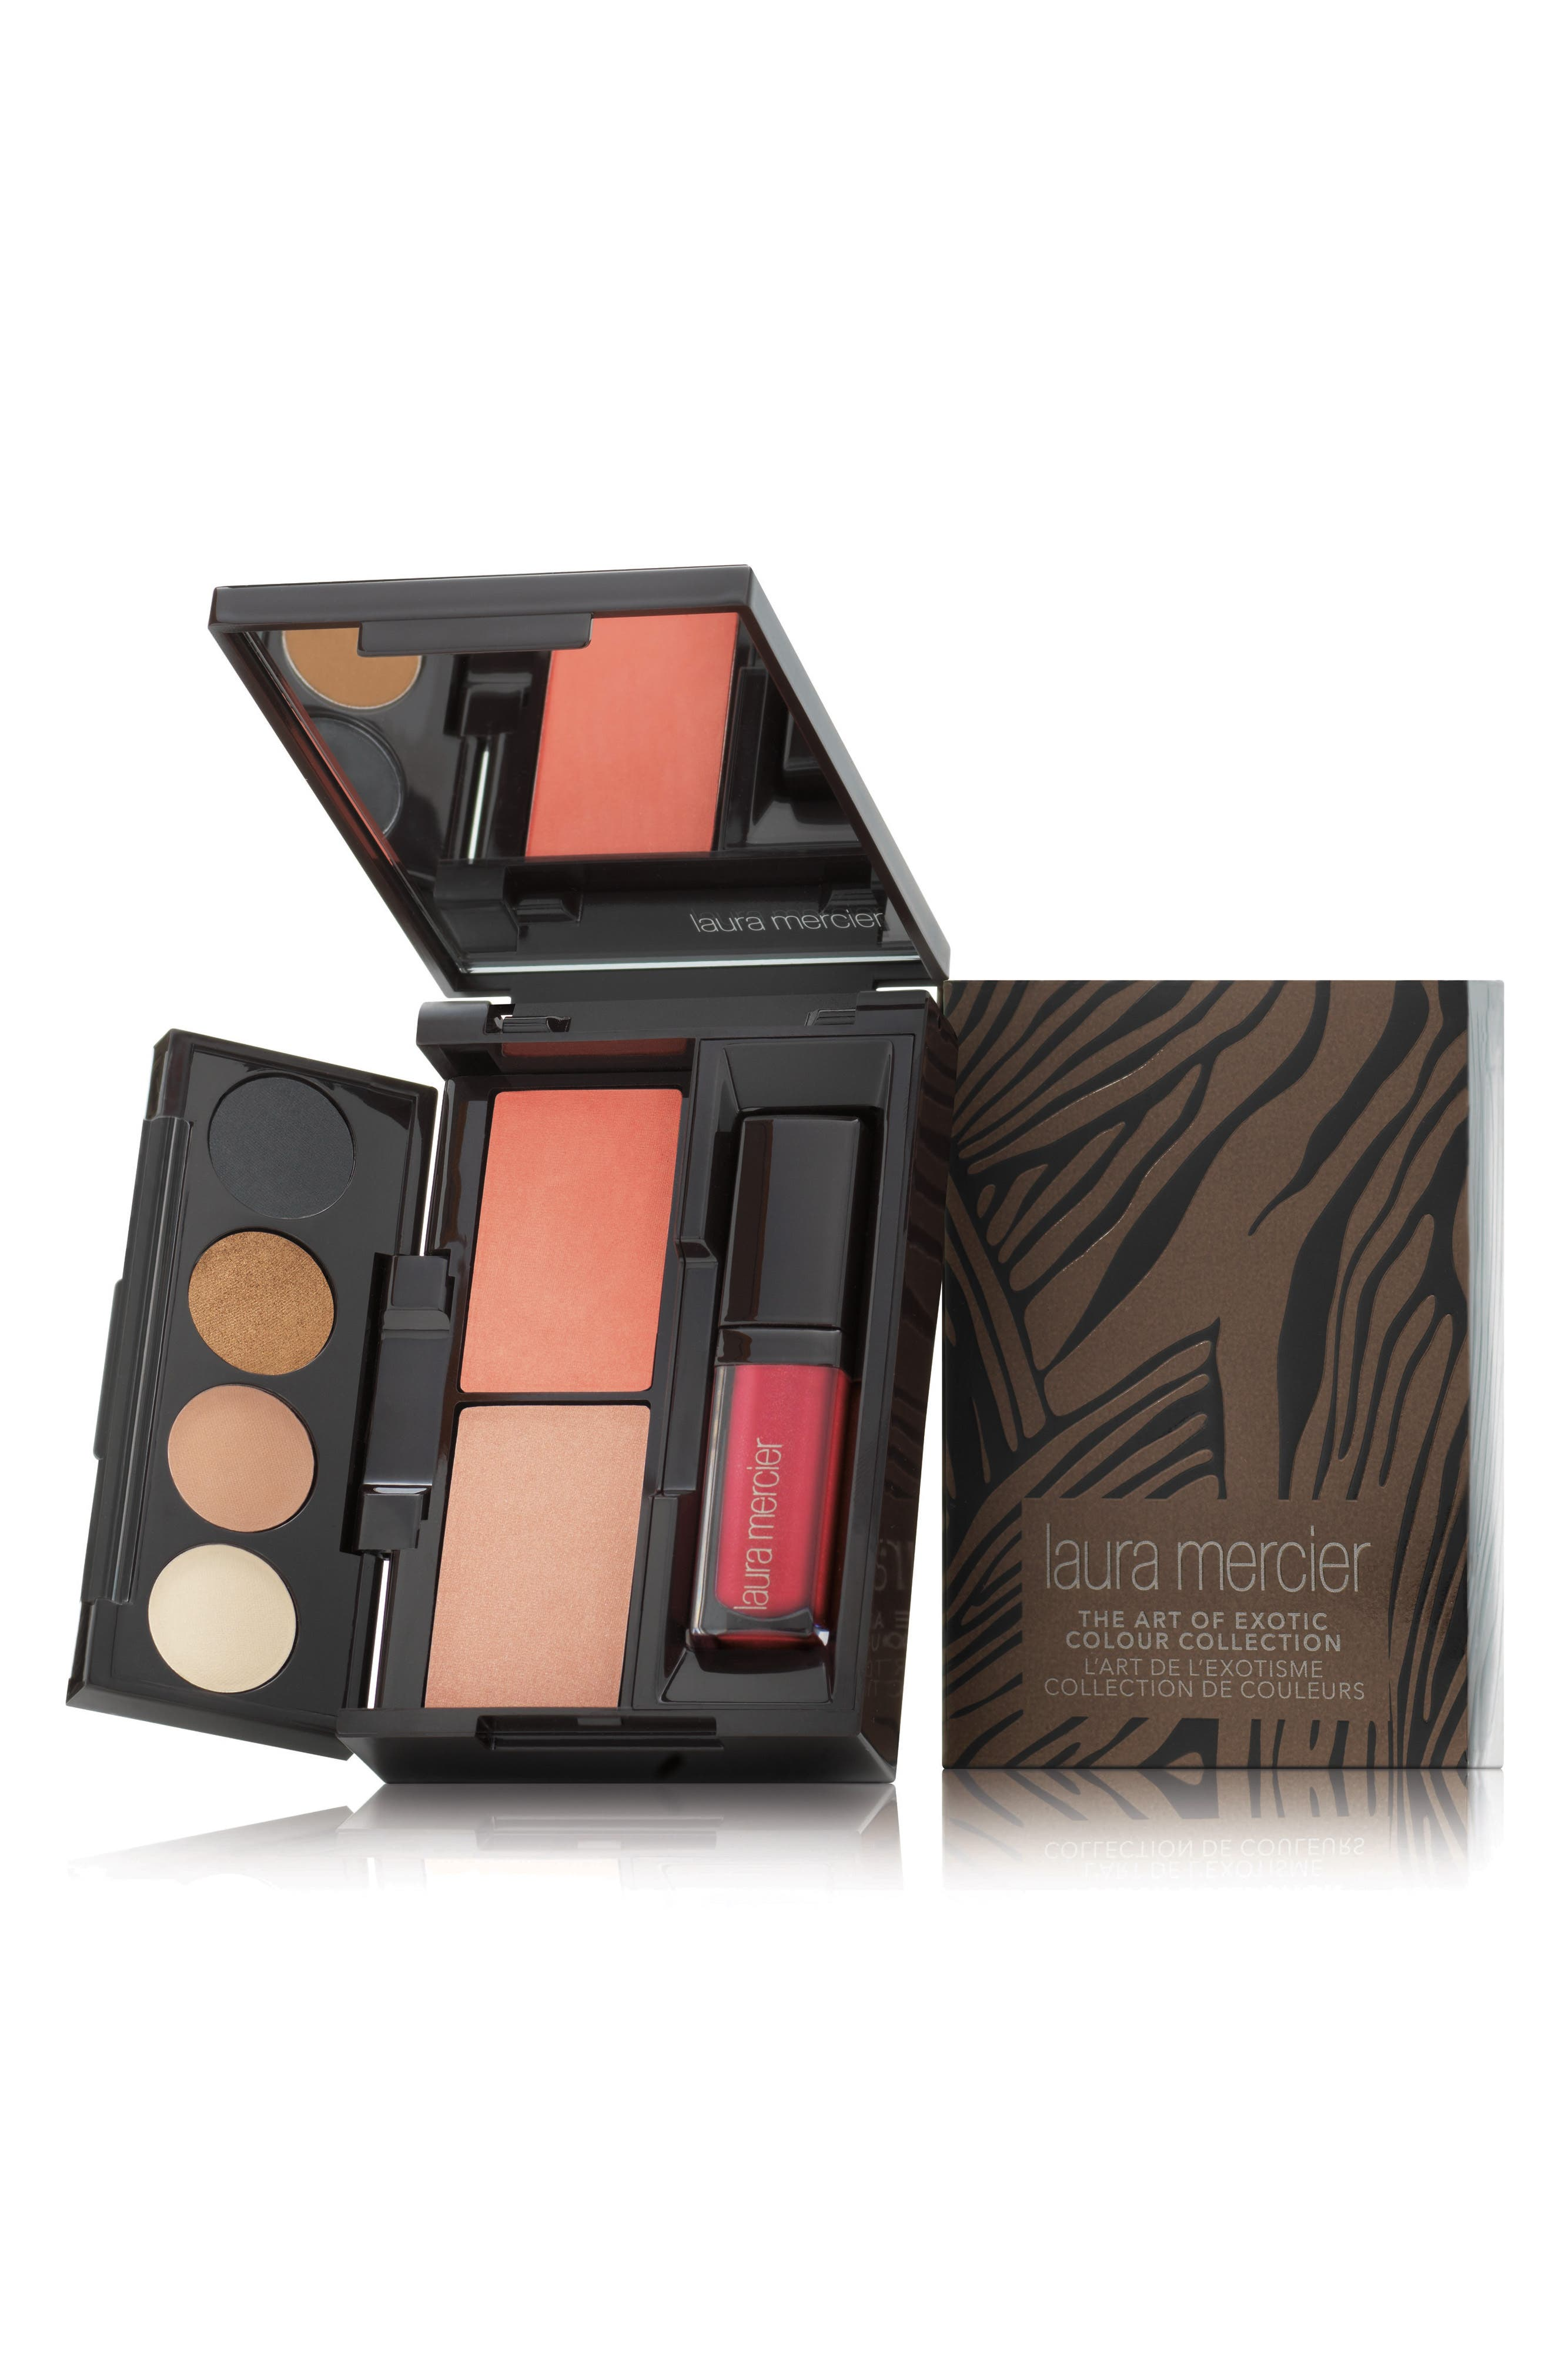 Laura Mercier The Art of Exotic Colour Collection ($104 Value)